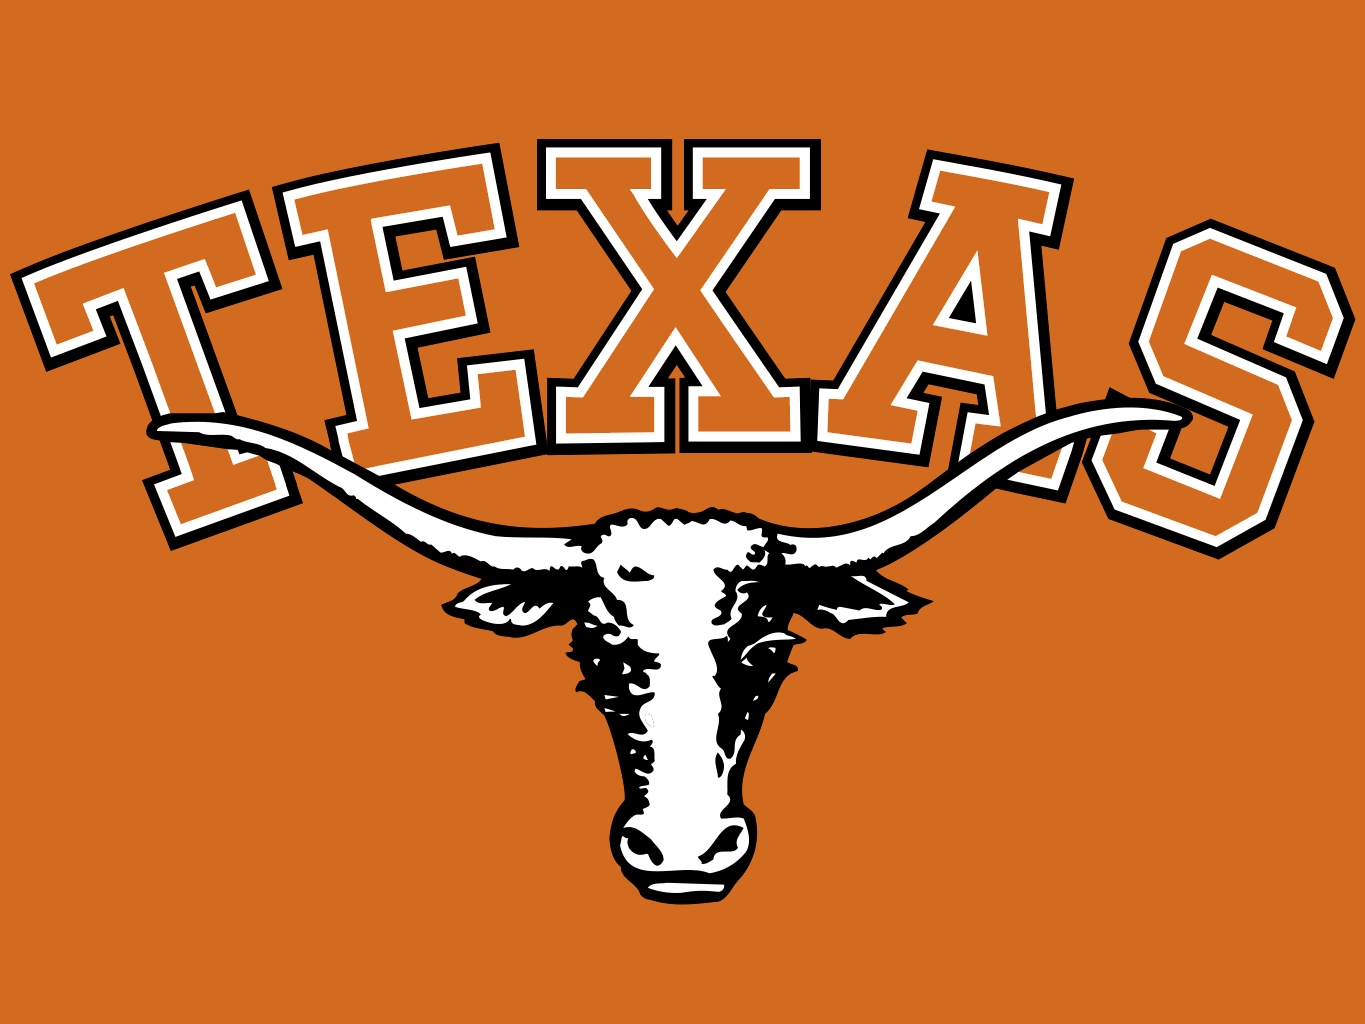 Texas longhorns football Logos.